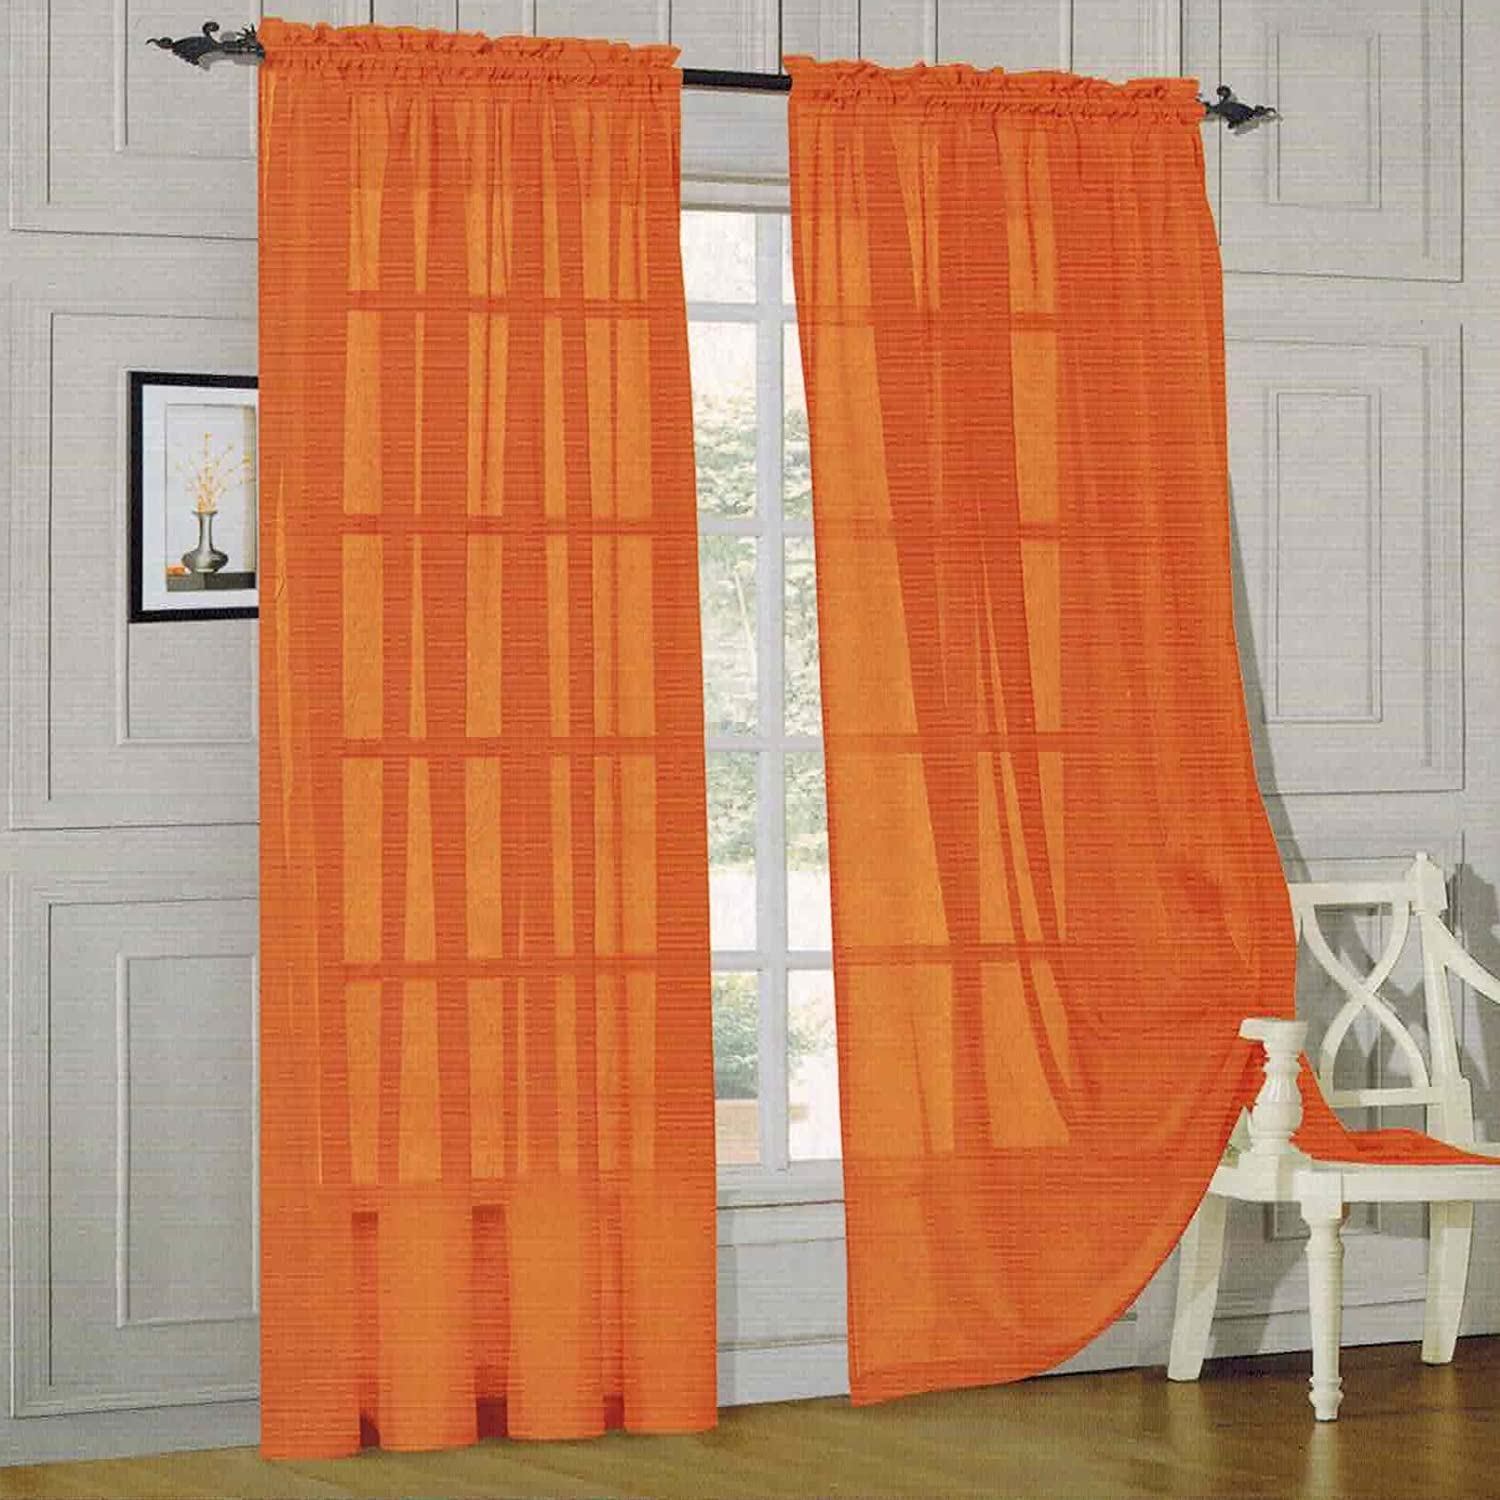 Elegance Linen SHEER PANEL with ROD POCKET - Window Curtain 60-inch width X 84-inch Length - Chocolate